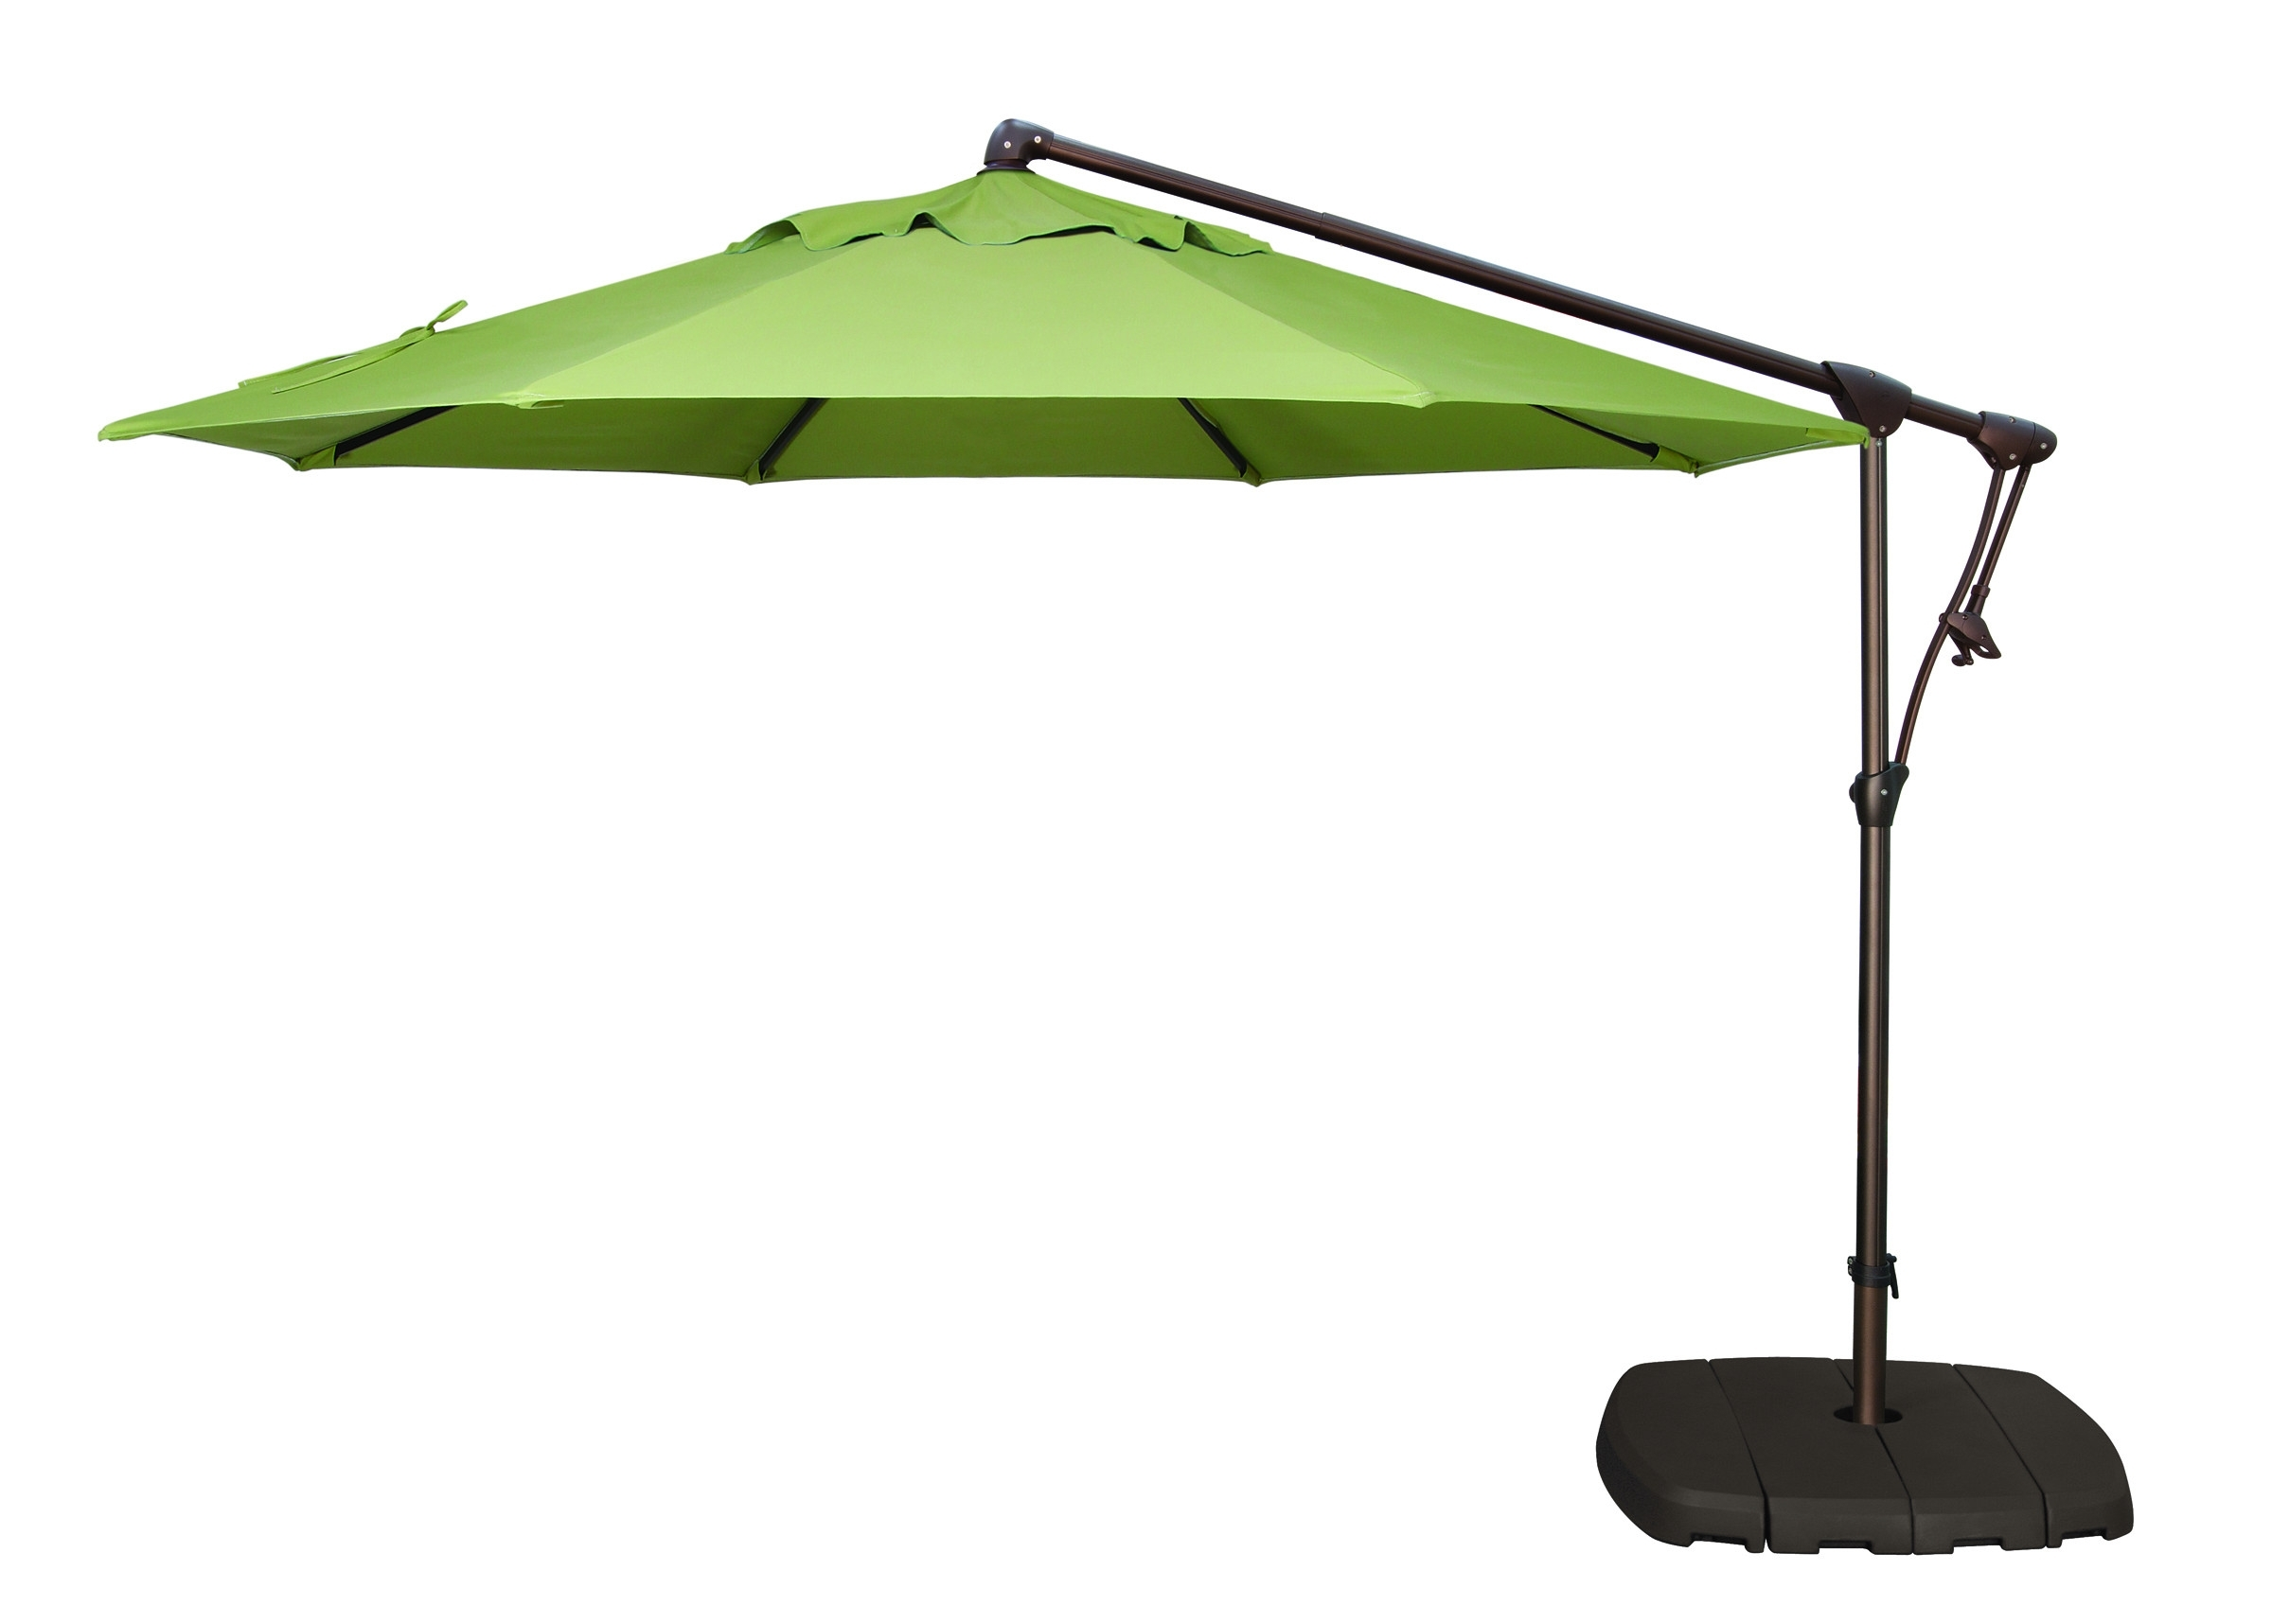 Favorite Walmart Patio Umbrellas Patios Outstanding Umbrella For Stunning Inside Walmart Patio Umbrellas (View 5 of 20)